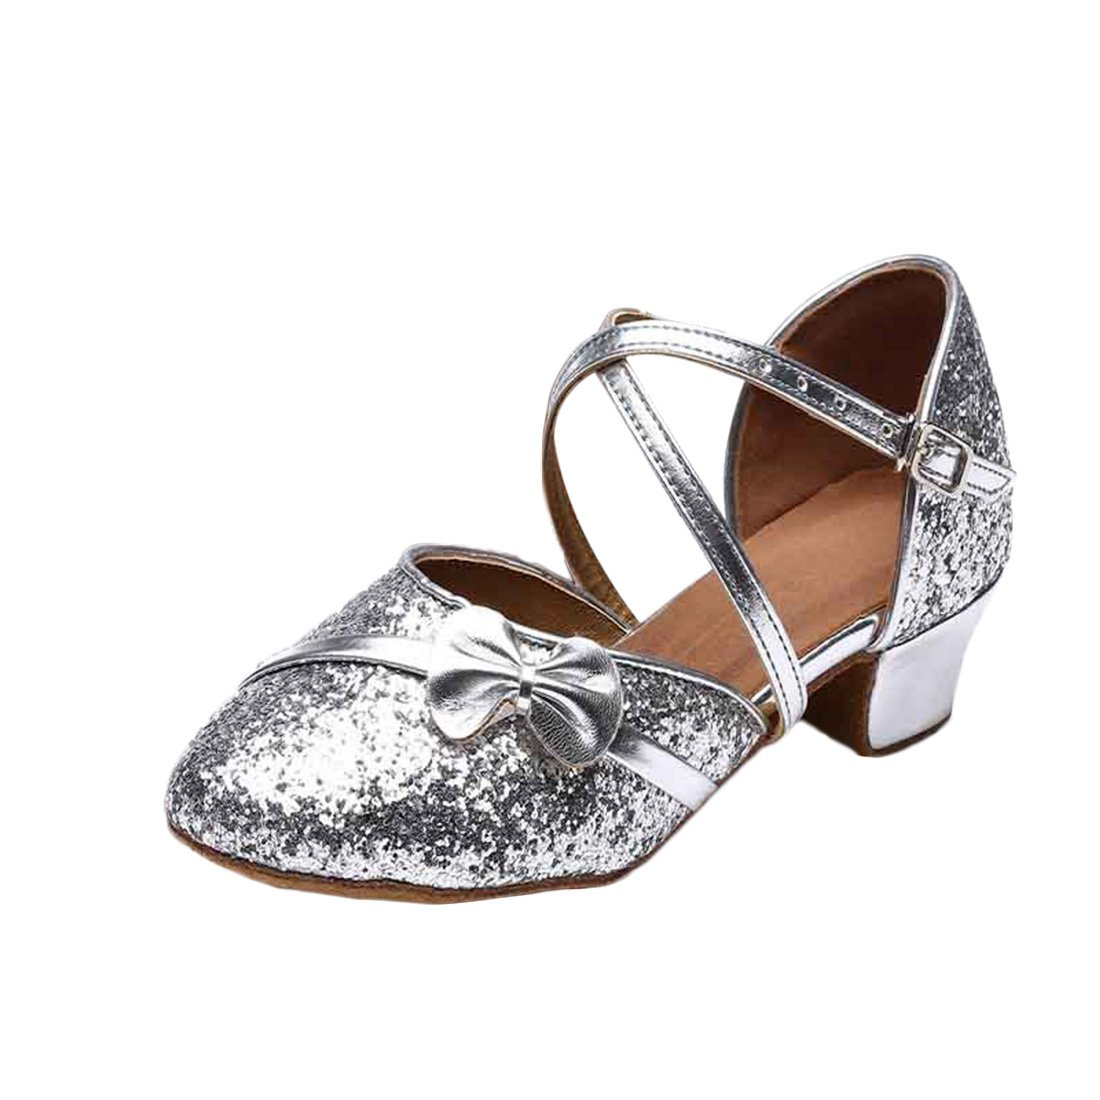 JTENGYAO Baby Grils Dress Up Princess Shoes Latin Dance Low Heel Shoes For Party Wedding